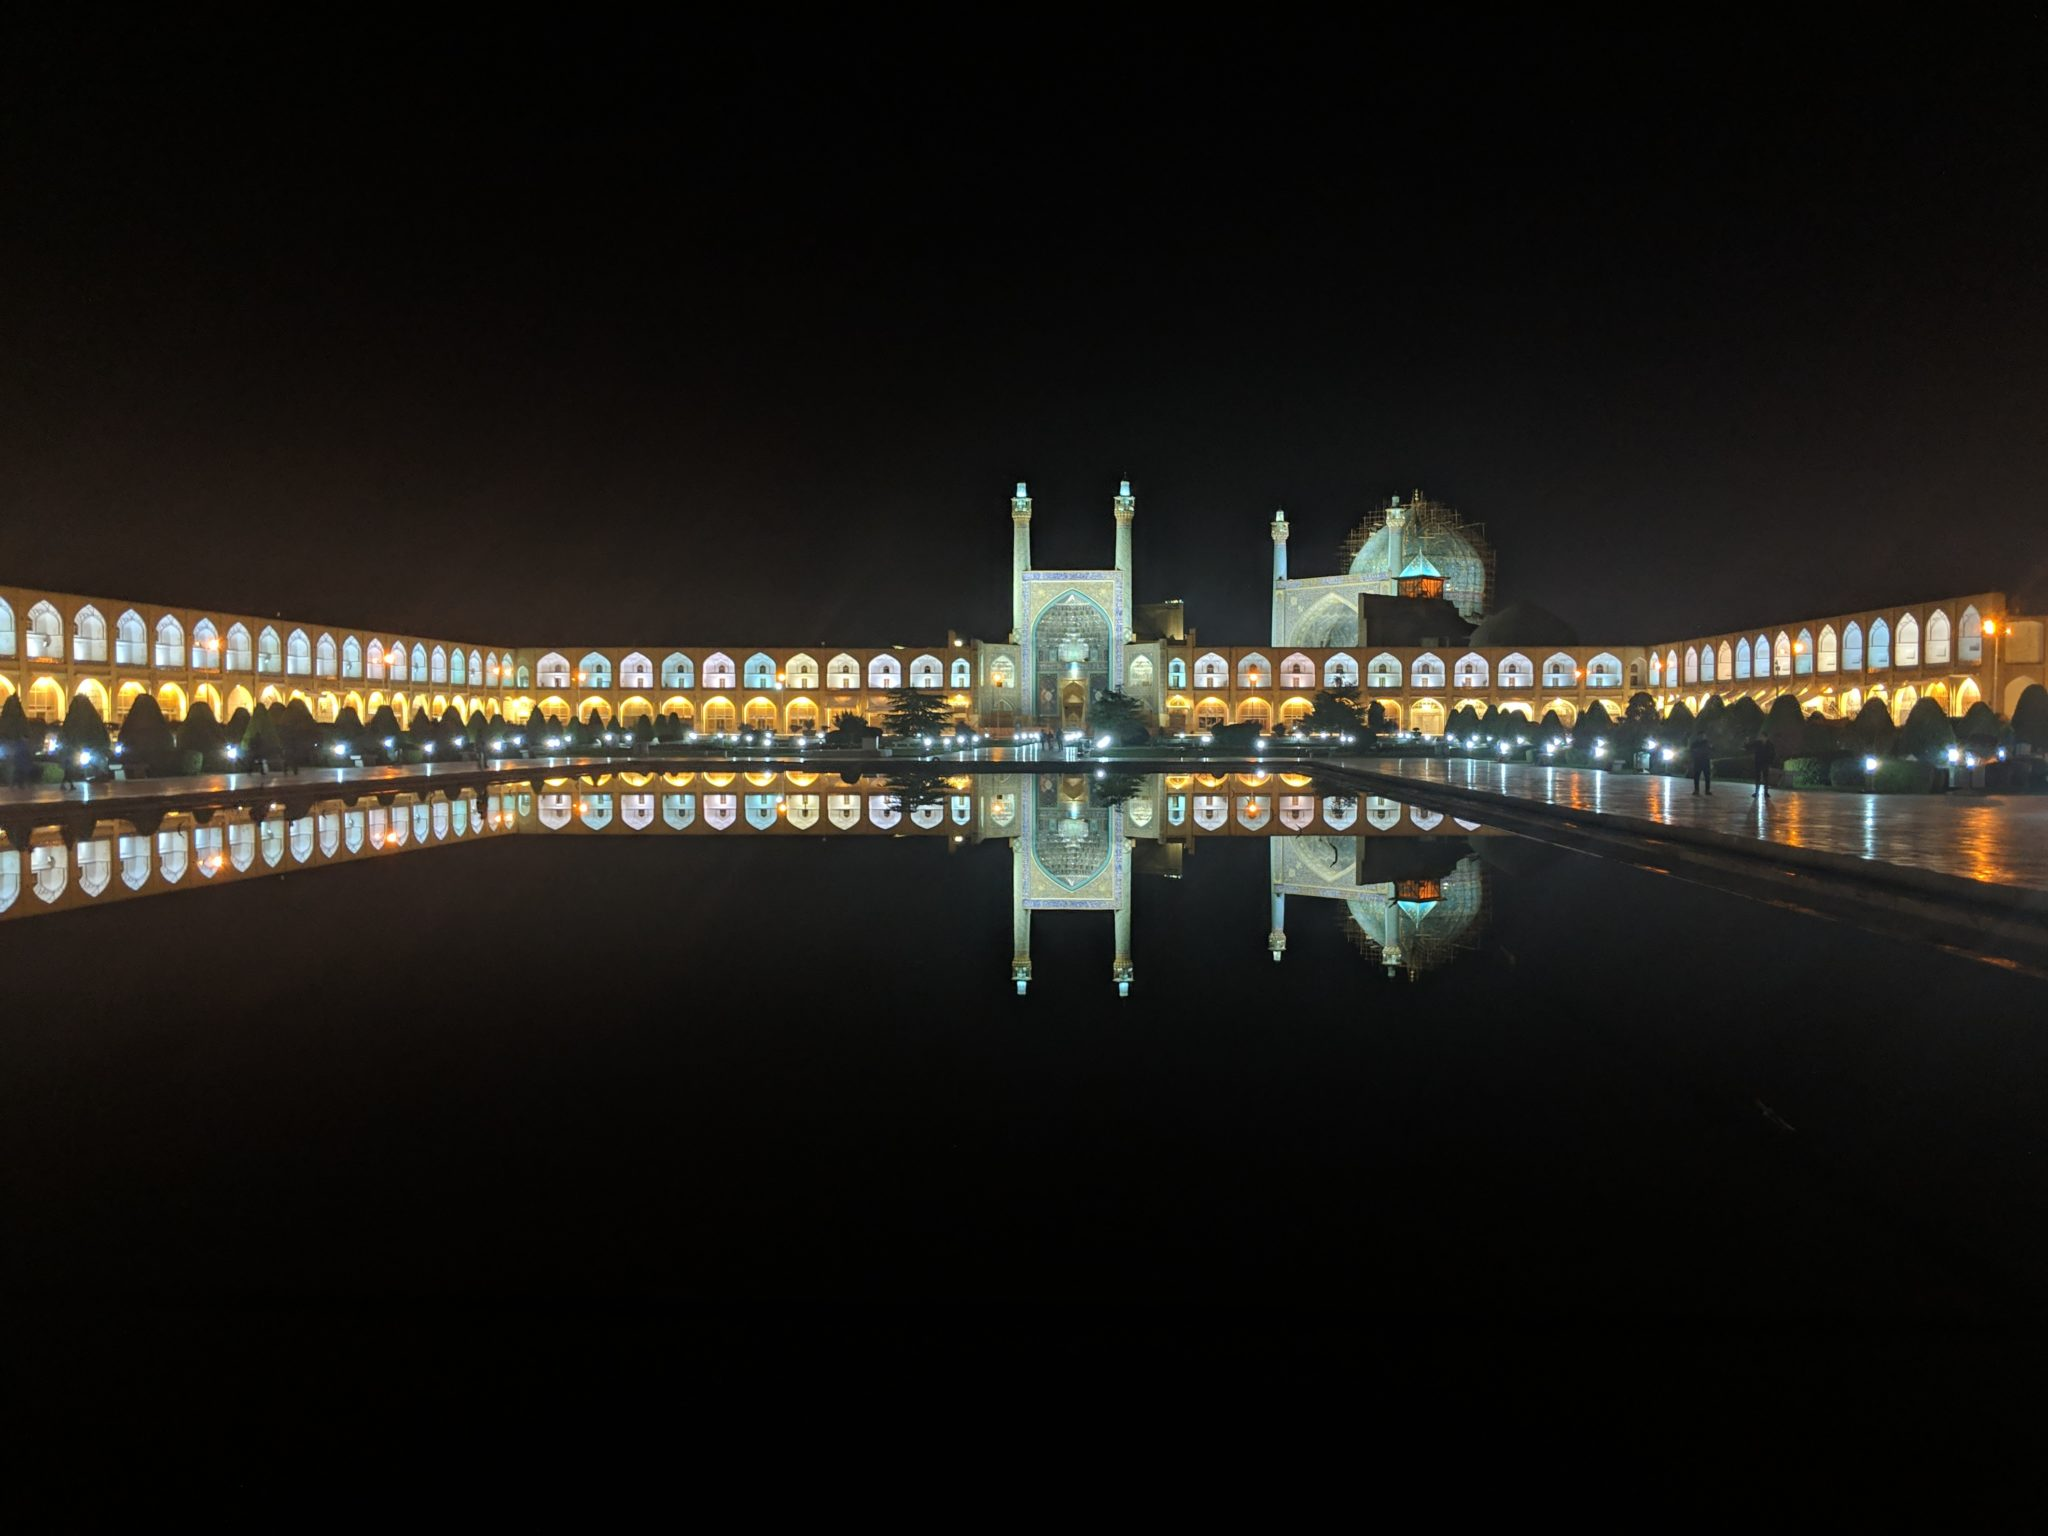 A large public square and mosque lit at night with pink, golden, and turquoise lights.